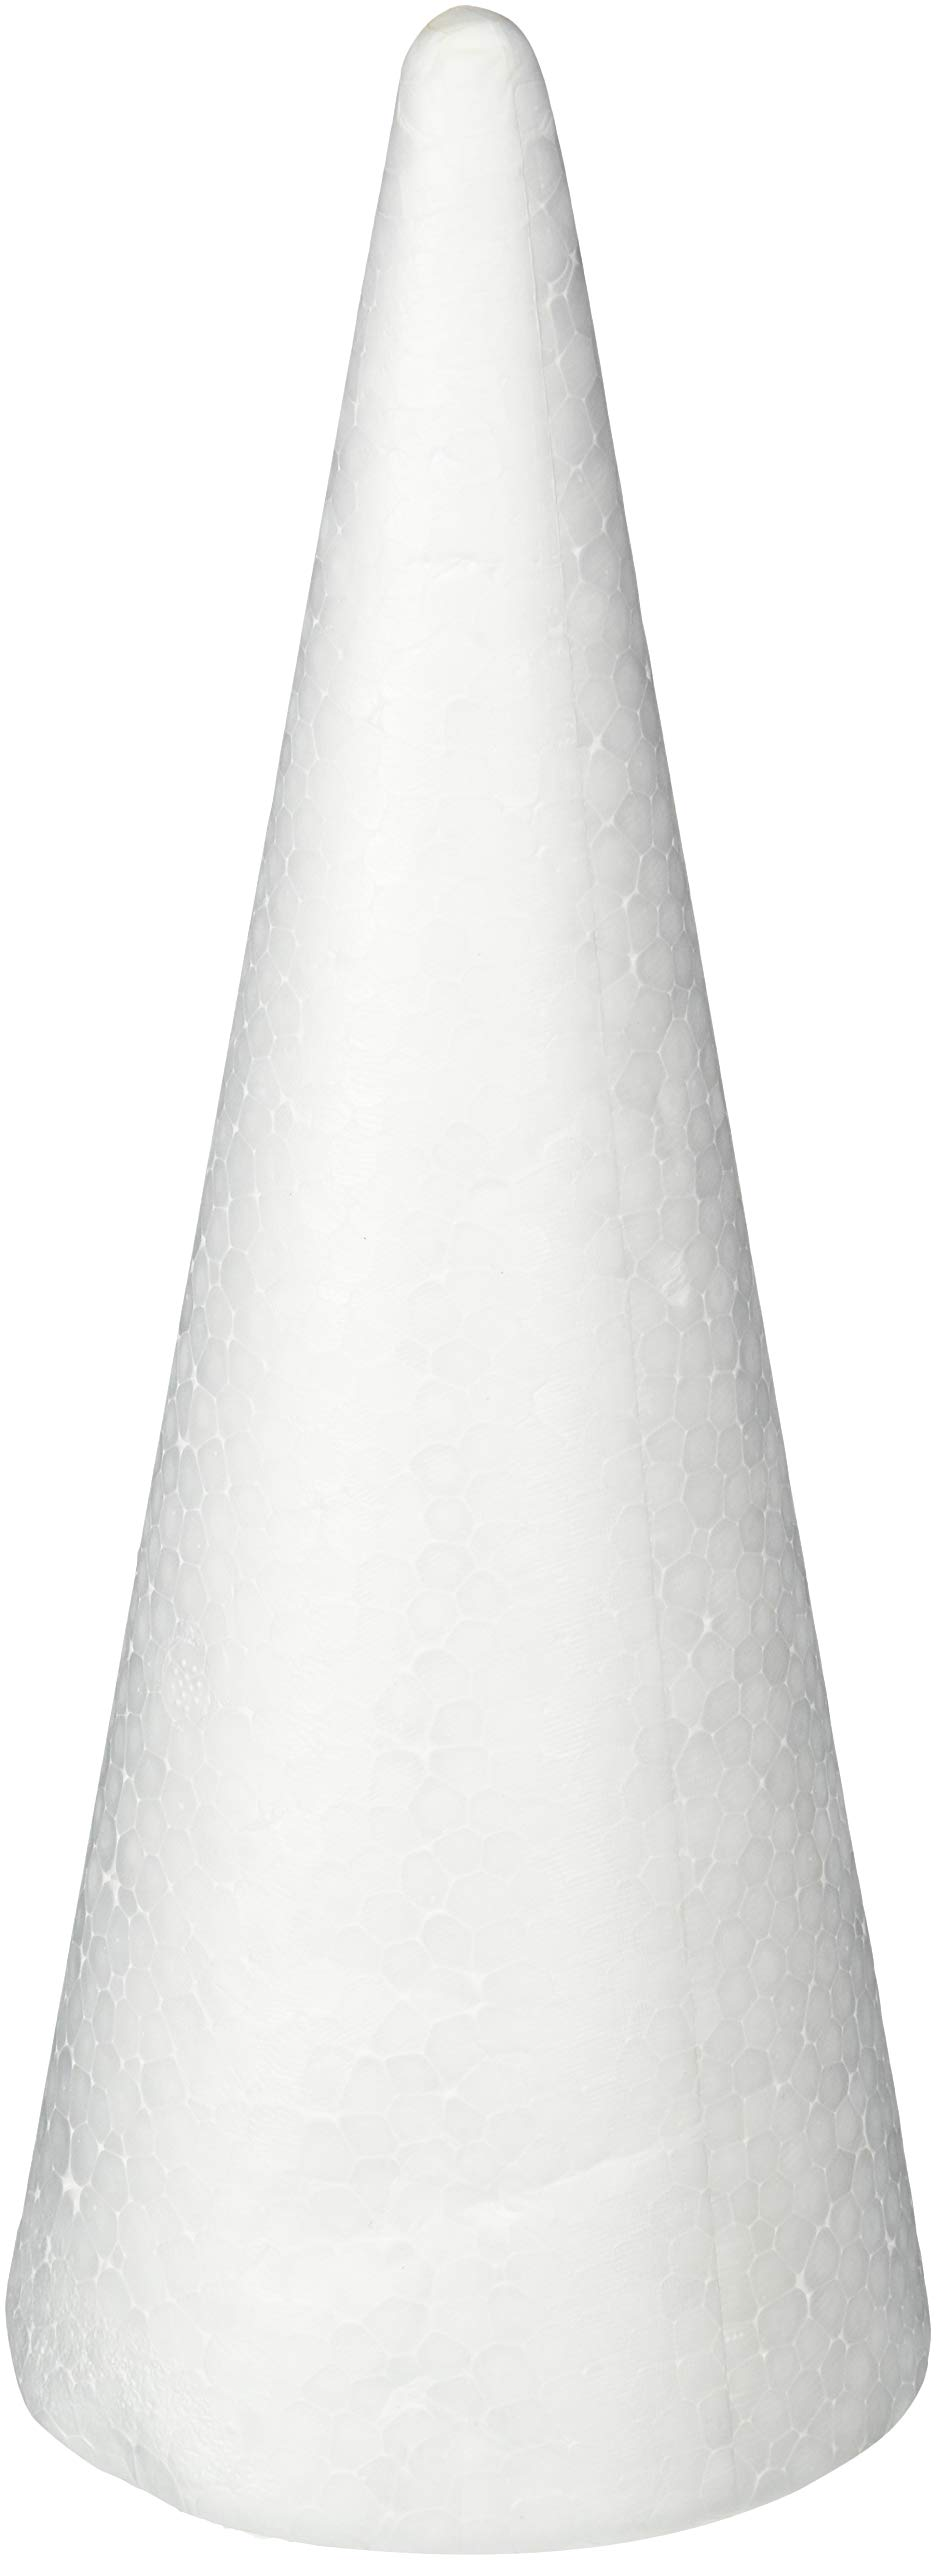 Darice Durafoam Cone White 9.85 inches (6-Pack) 01260P